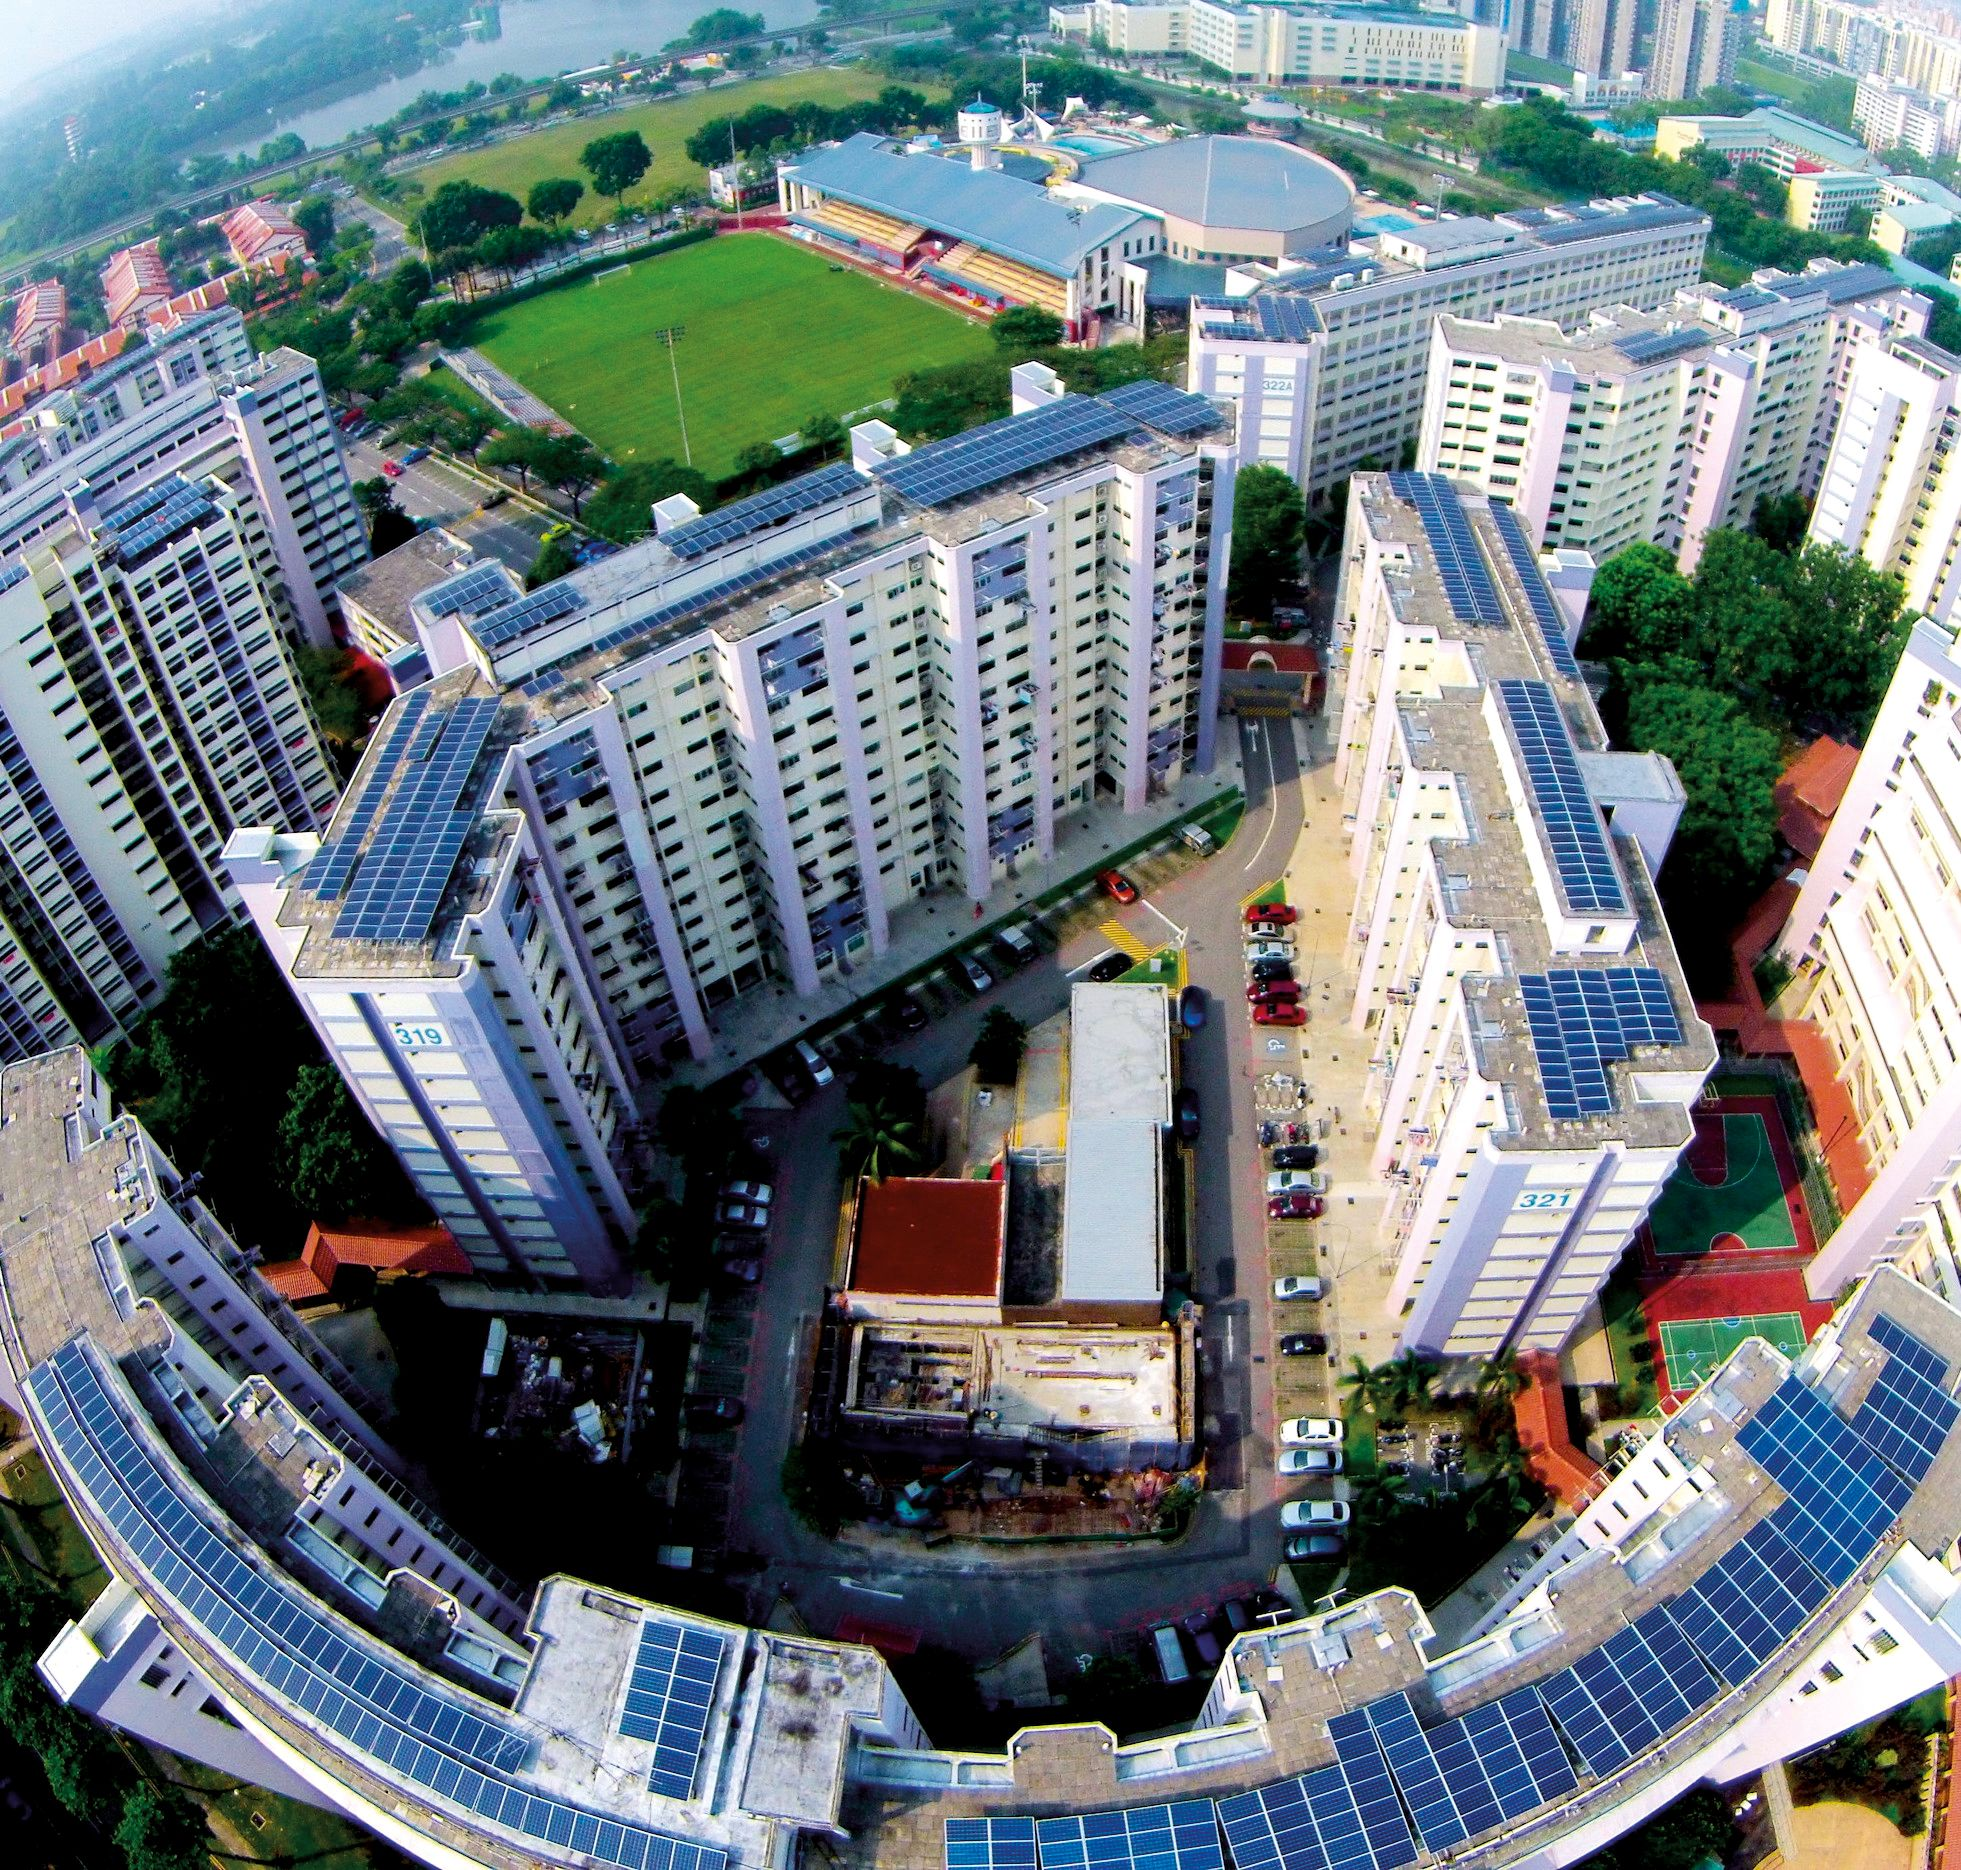 Sustainable Towns: The Housing & Development Board awarded Sunseap the contract to install solar photovoltaic (PV) systems in 680 HDB residential blocks in four towns: Jurong East (pictured), Marine Parade, Sembawang and Tampines